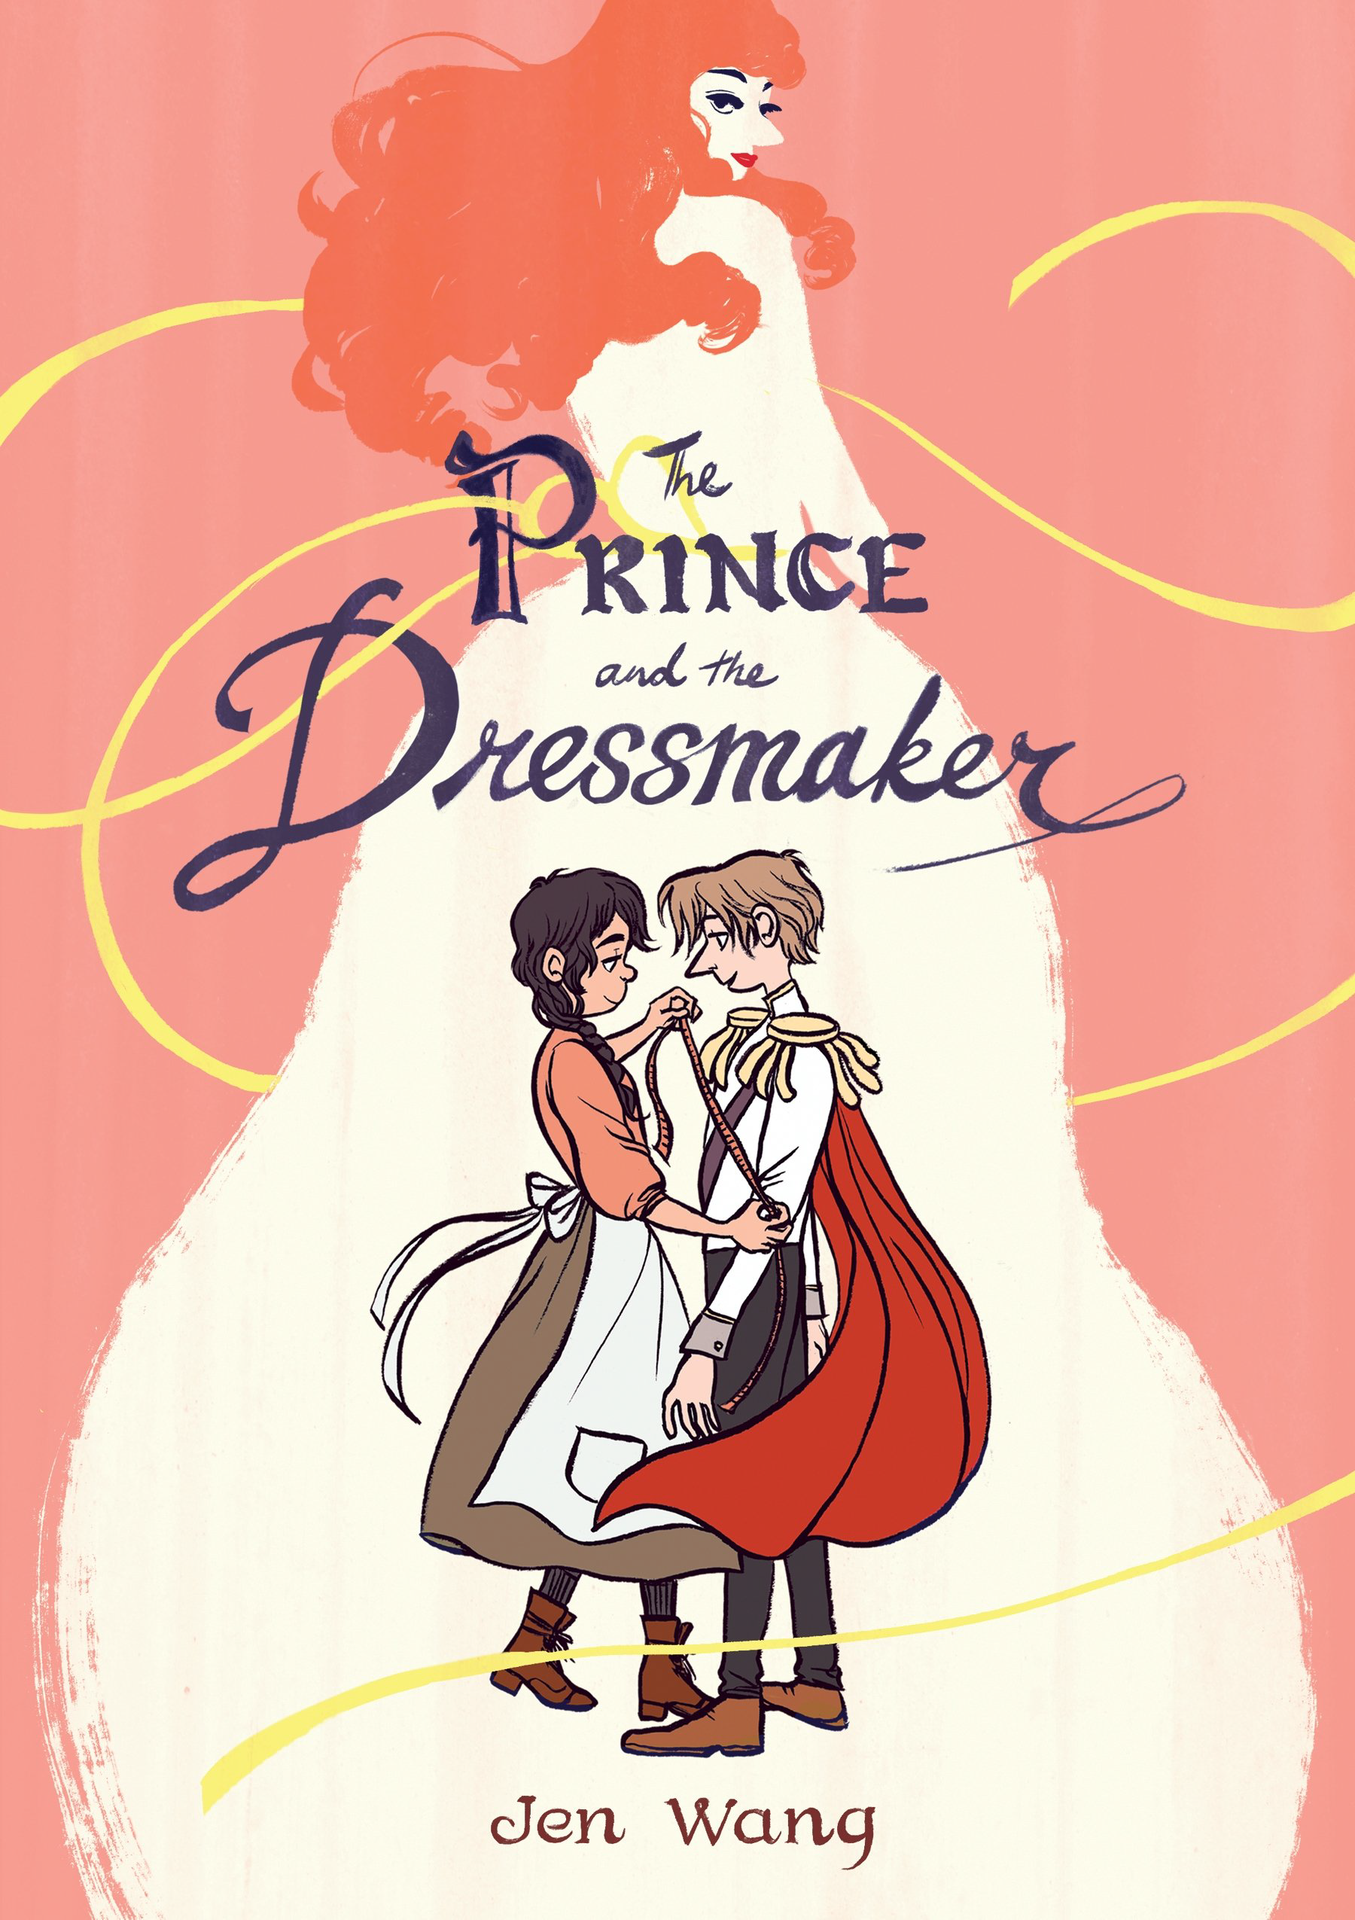 Book cover for The Prince and the Dressmaker